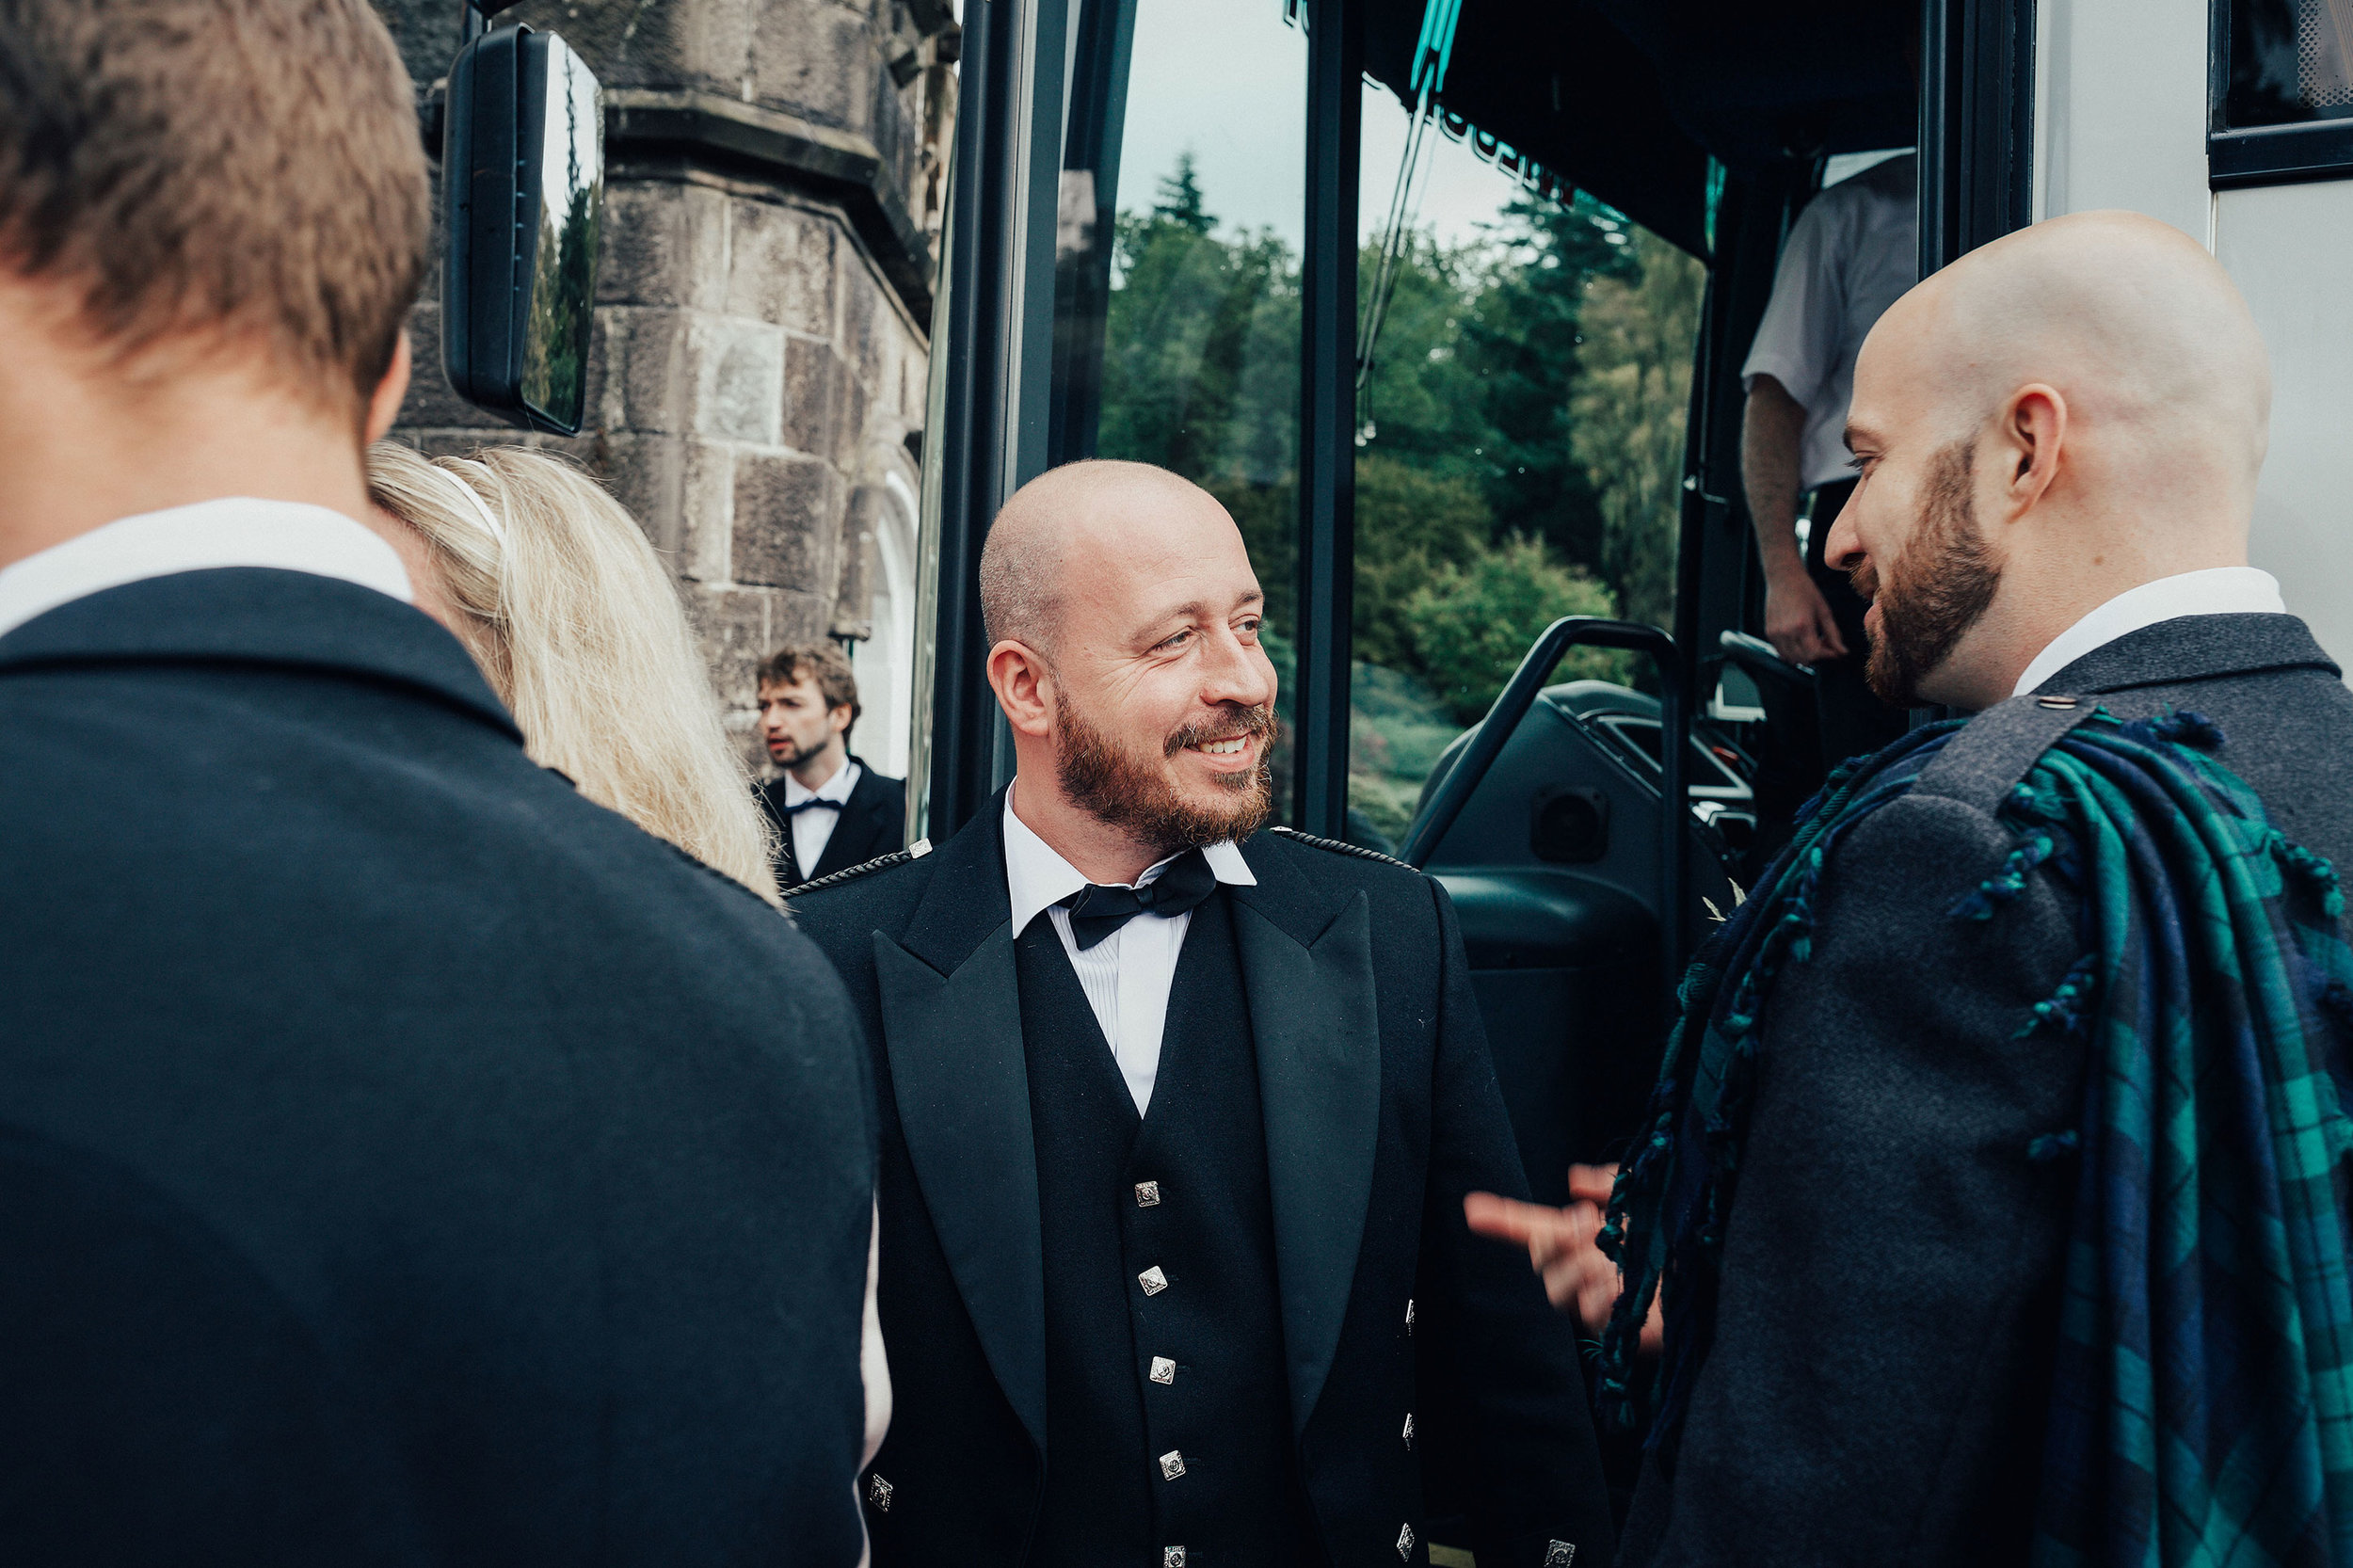 BOTURICH_CASTLE_WEDDING_PHOTOGRAPHER_PJ_PHILLIPS_PHOTOGRAPHY_43.jpg